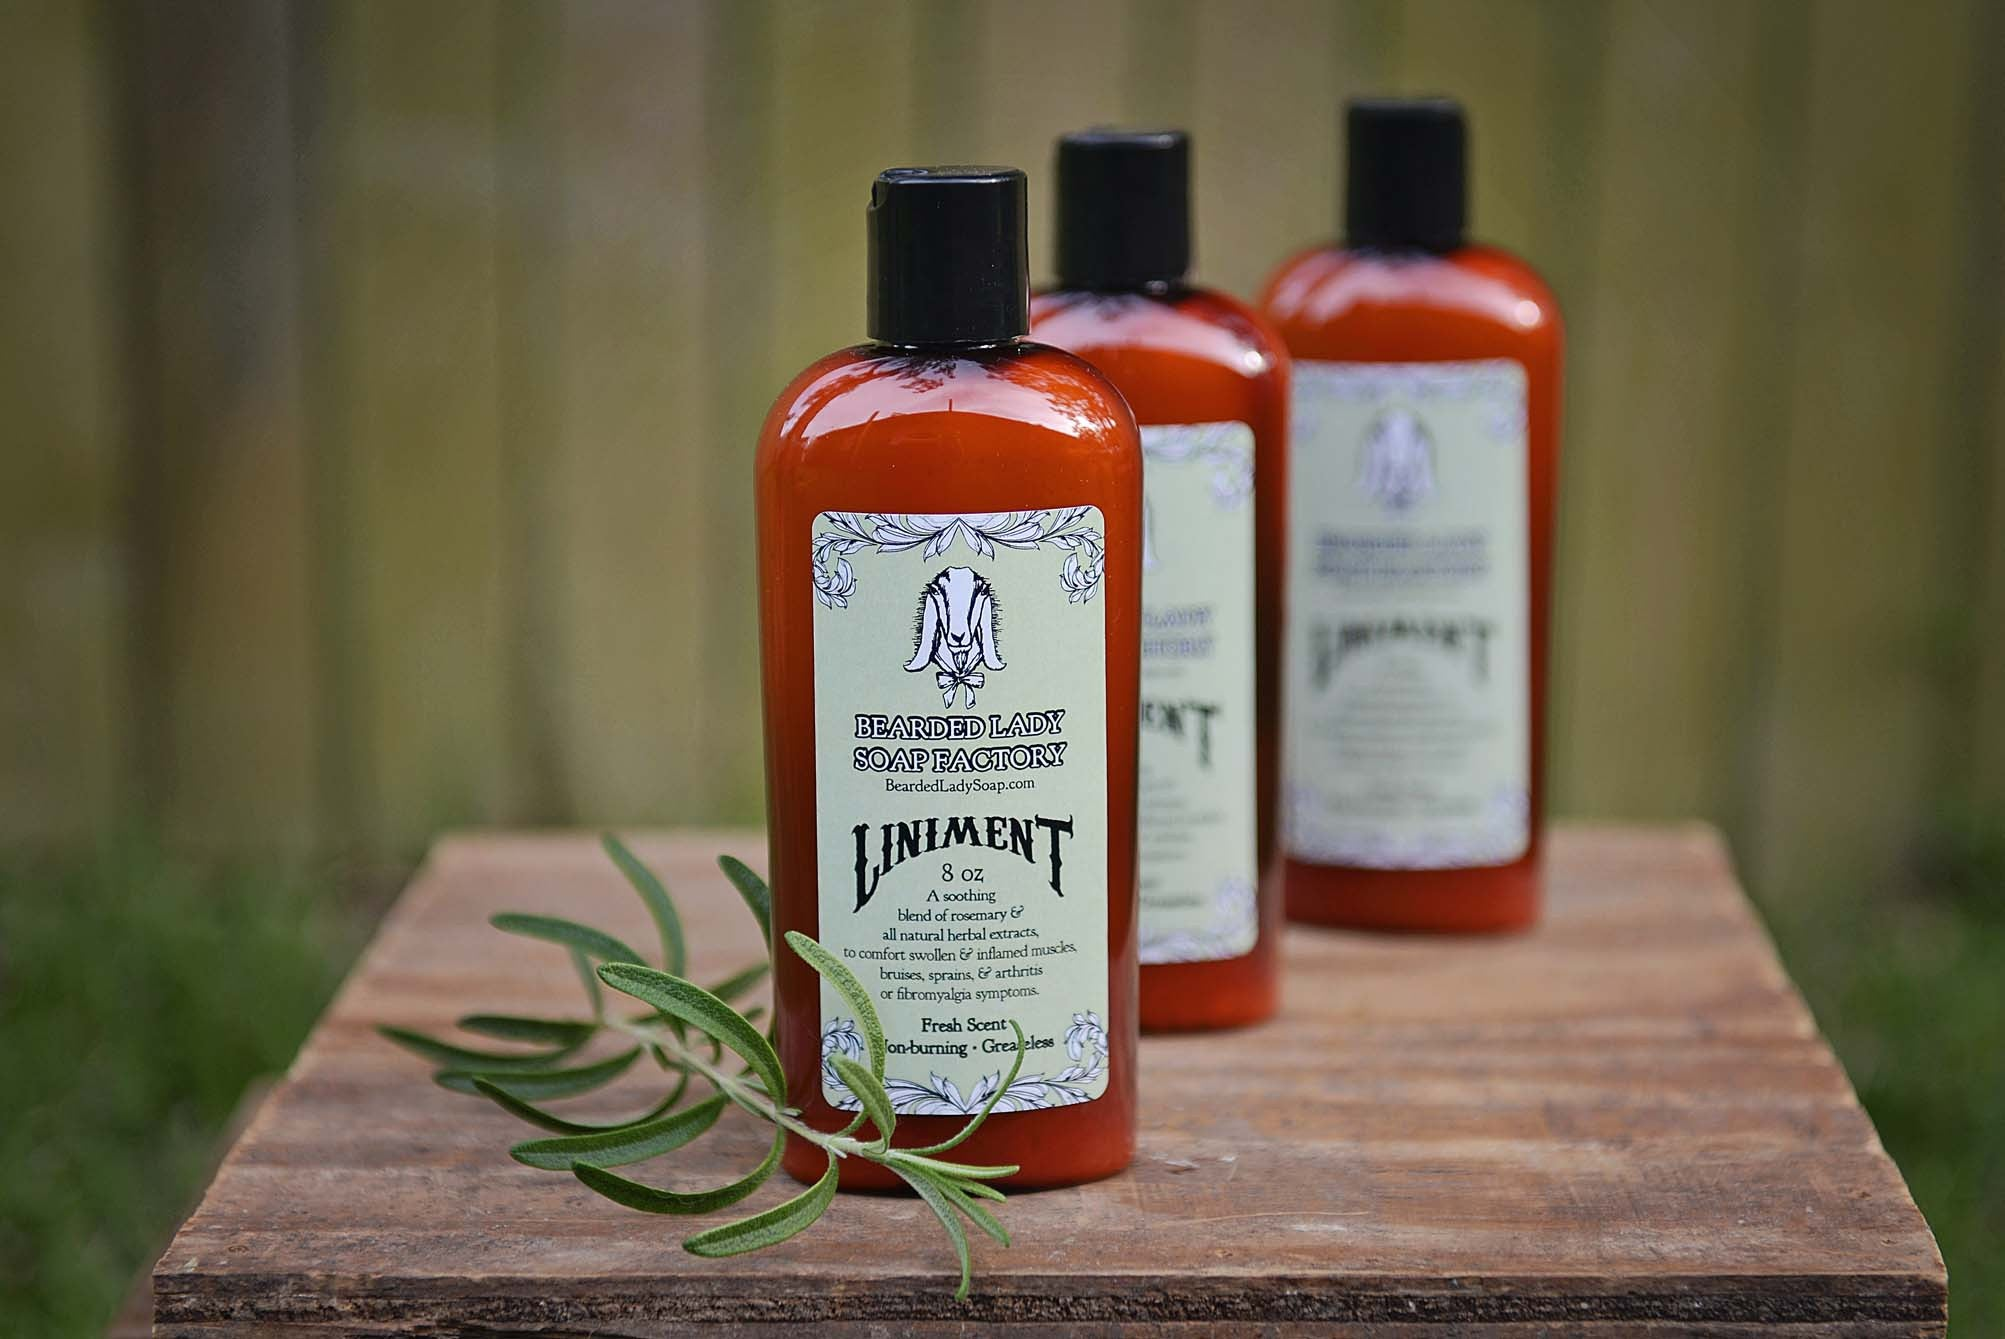 Goat Milk Liniment